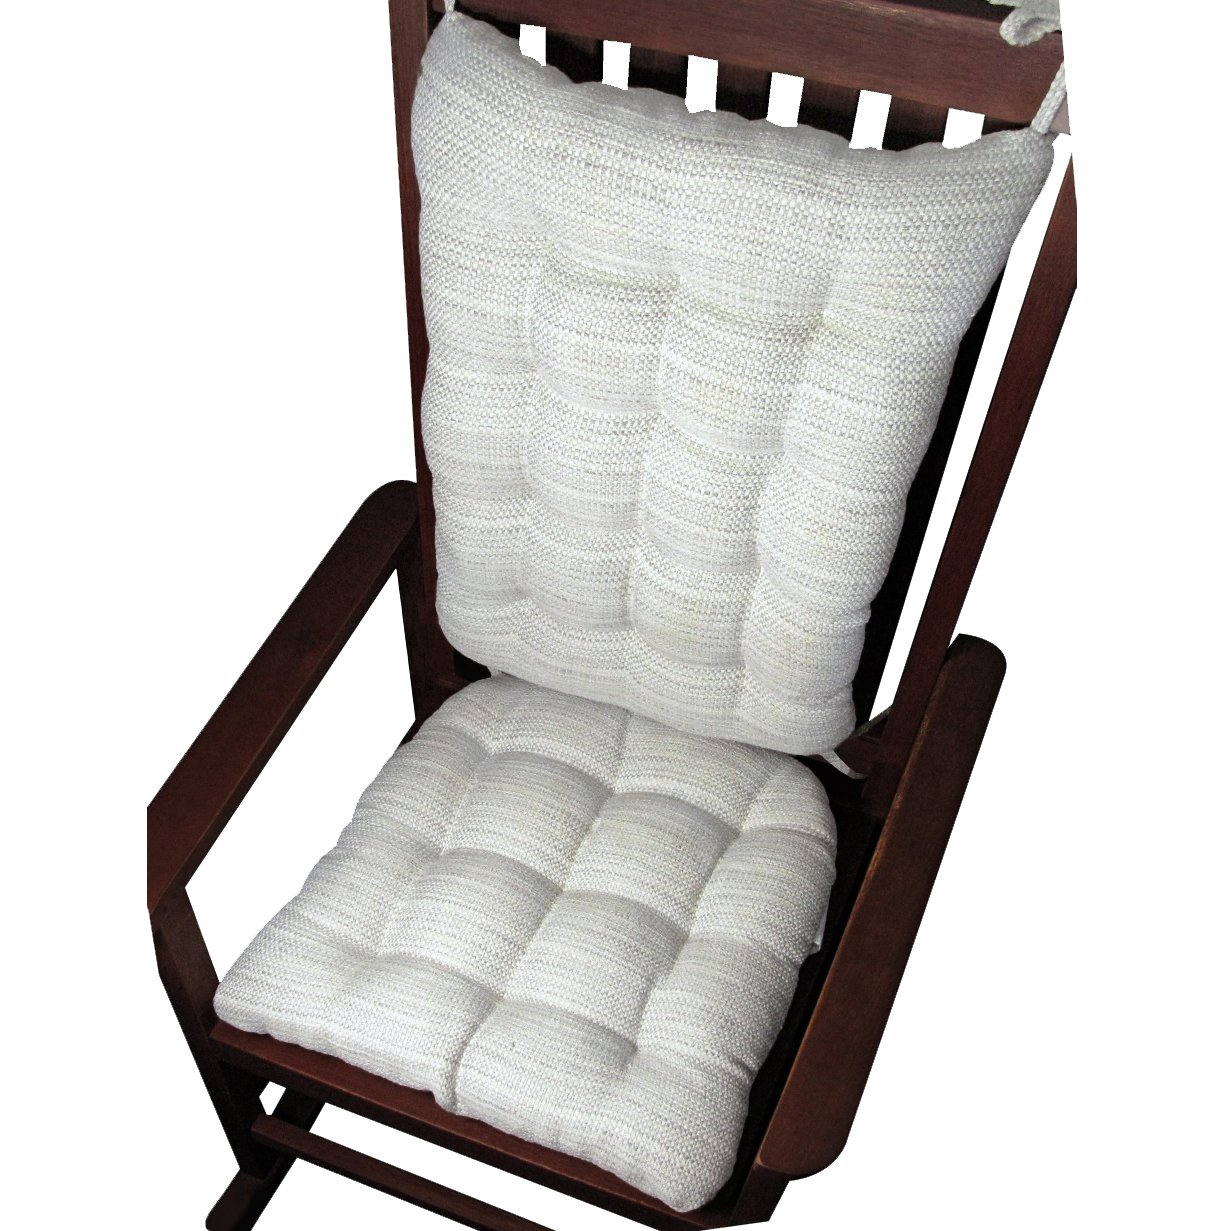 Amazon.com: Rocking Chair Cushions - Brisbane - Seat Cushion and ...